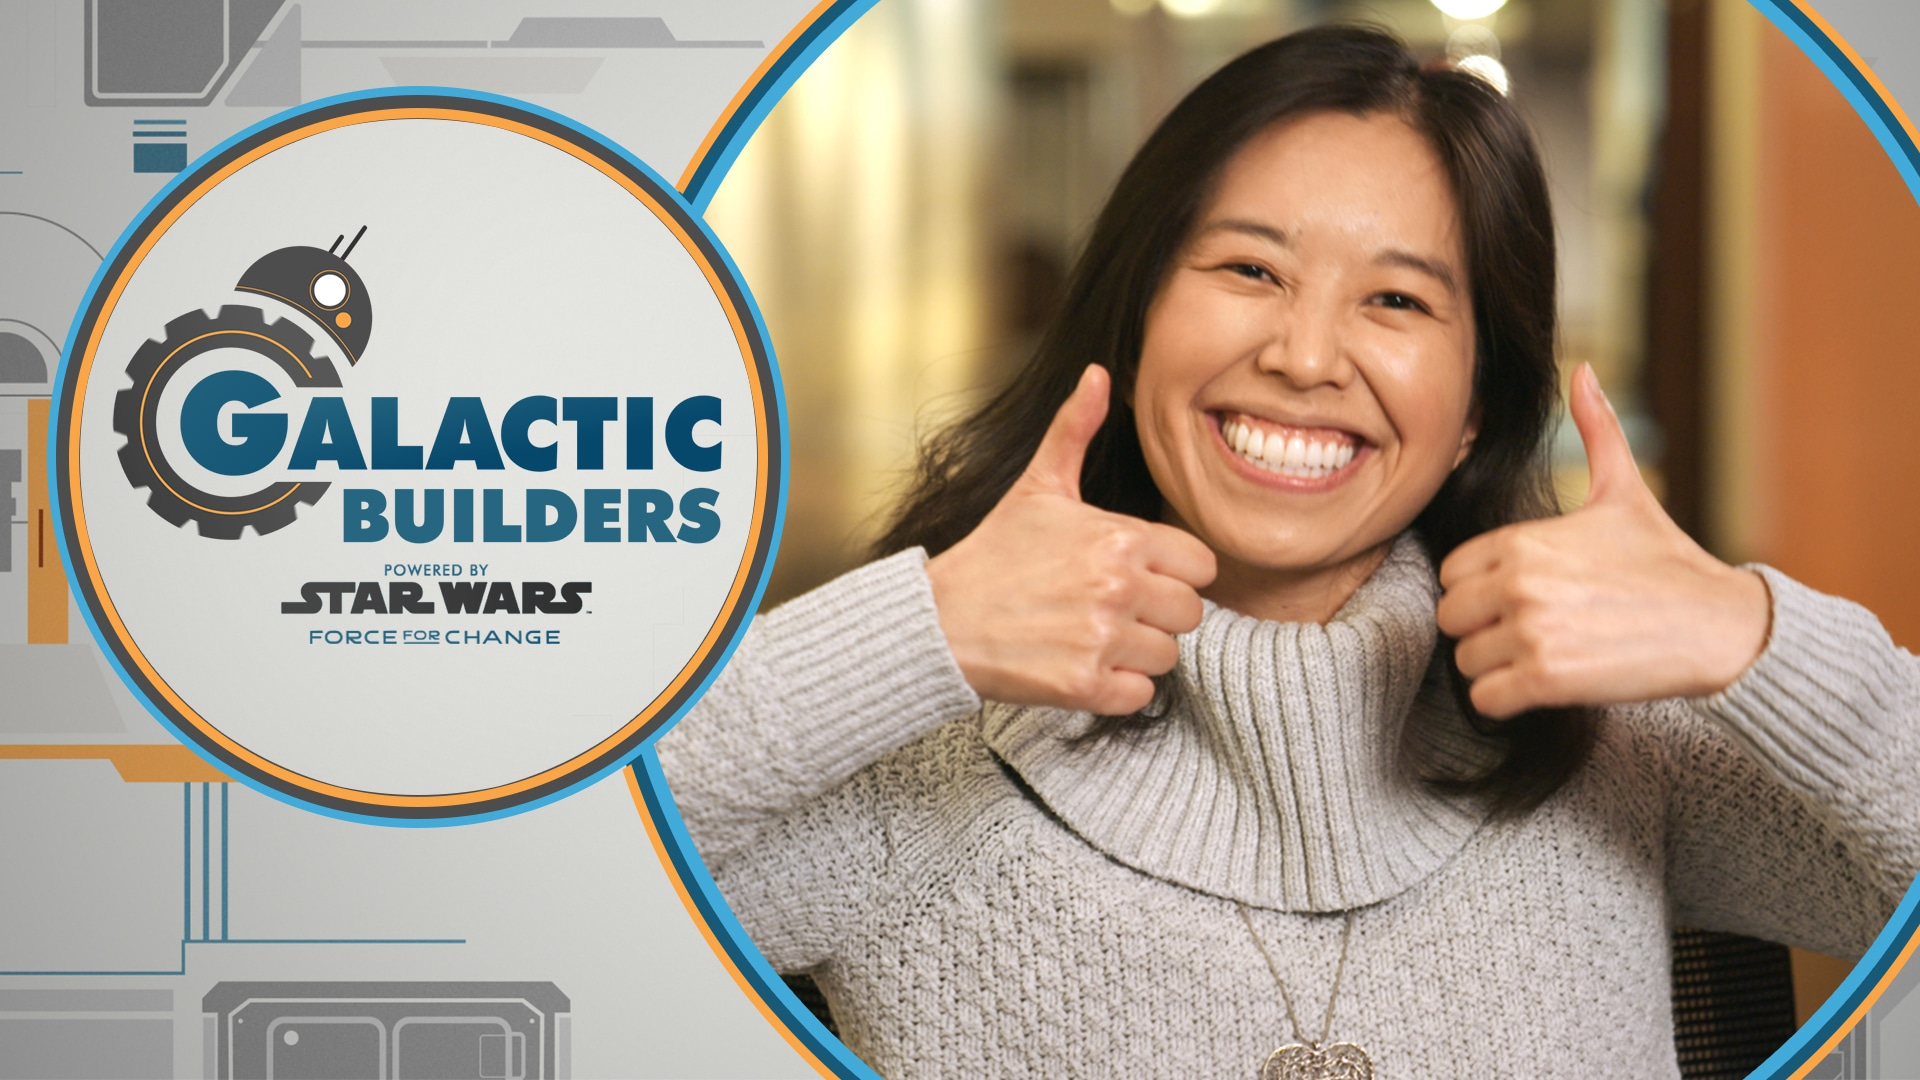 Building Connections with Star Wars at Lucasfilm | Galactic Builders